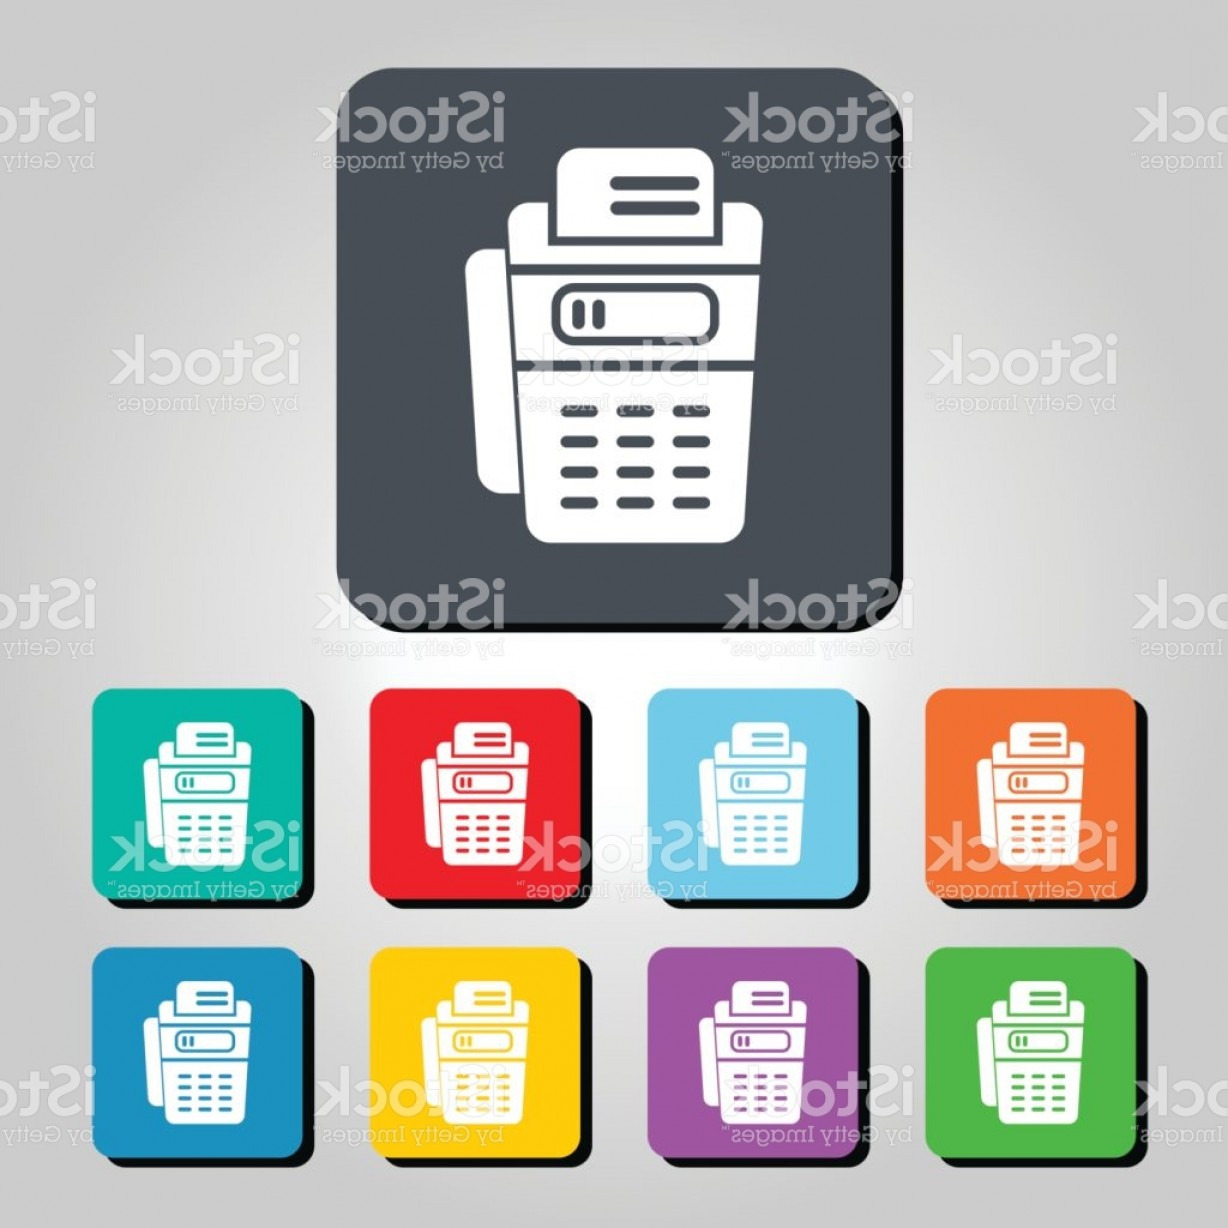 Point Of Sale Icon Vector: Point Of Sale Pos Terminal Vector Icon Illustration Gm